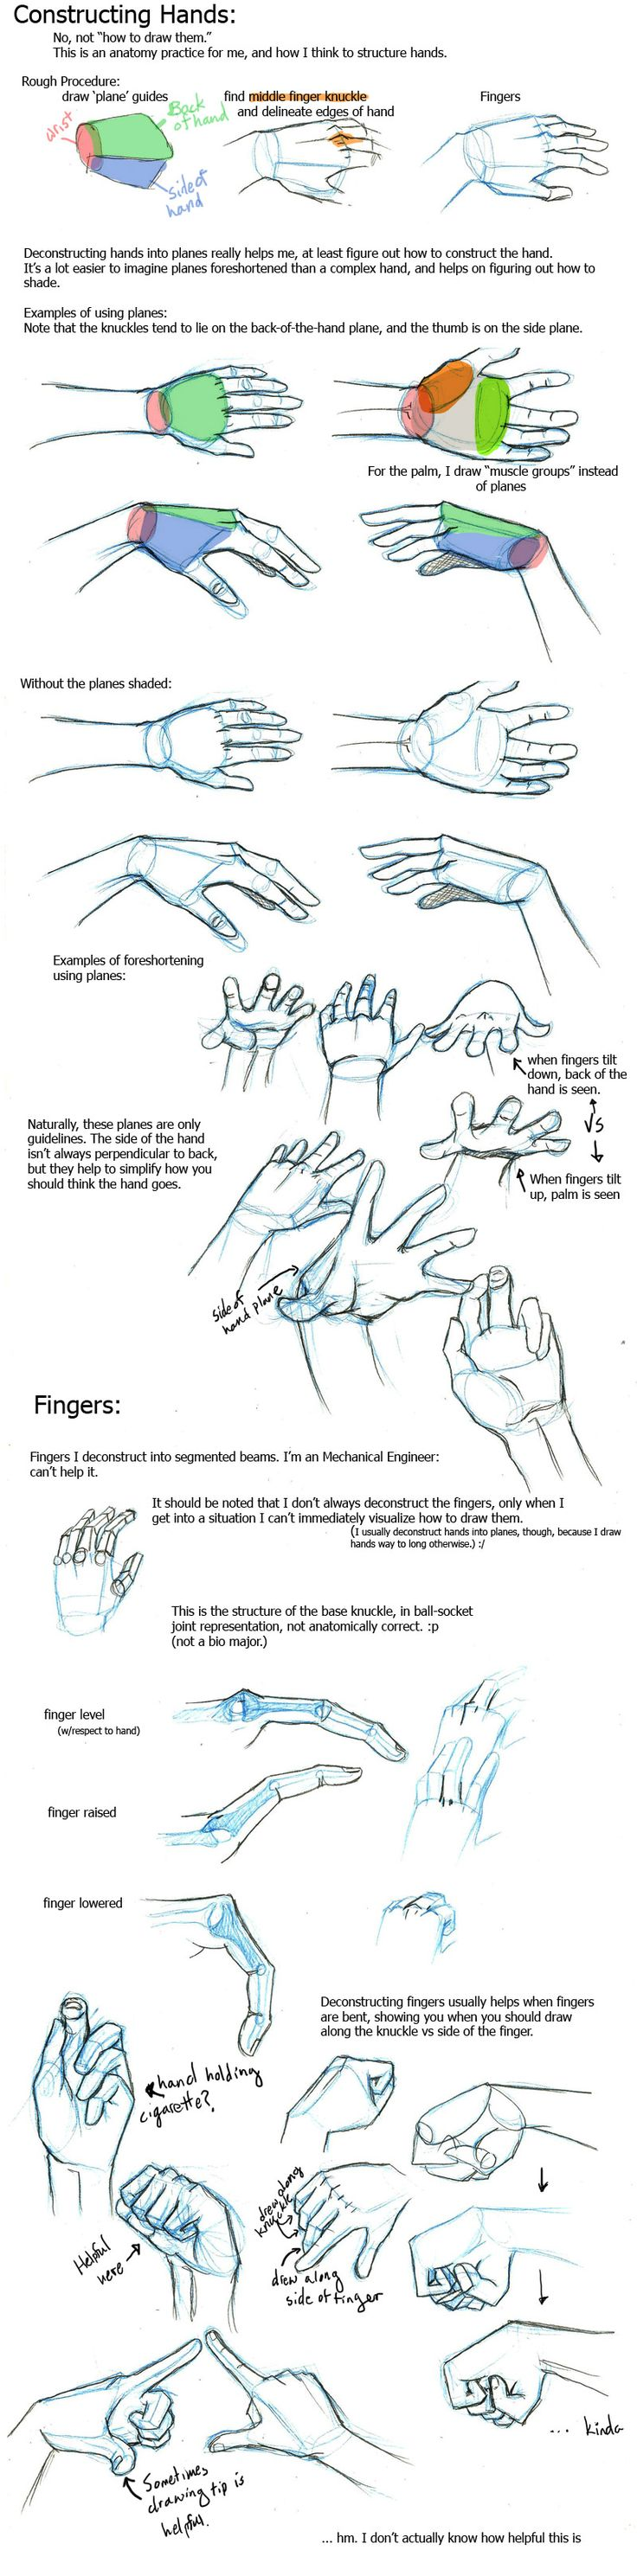 """Today's Drawing Class """"How to Draw Hands: Hands look complicated to draw but learn a few little tricks and you'll be drawing like the Masters"""